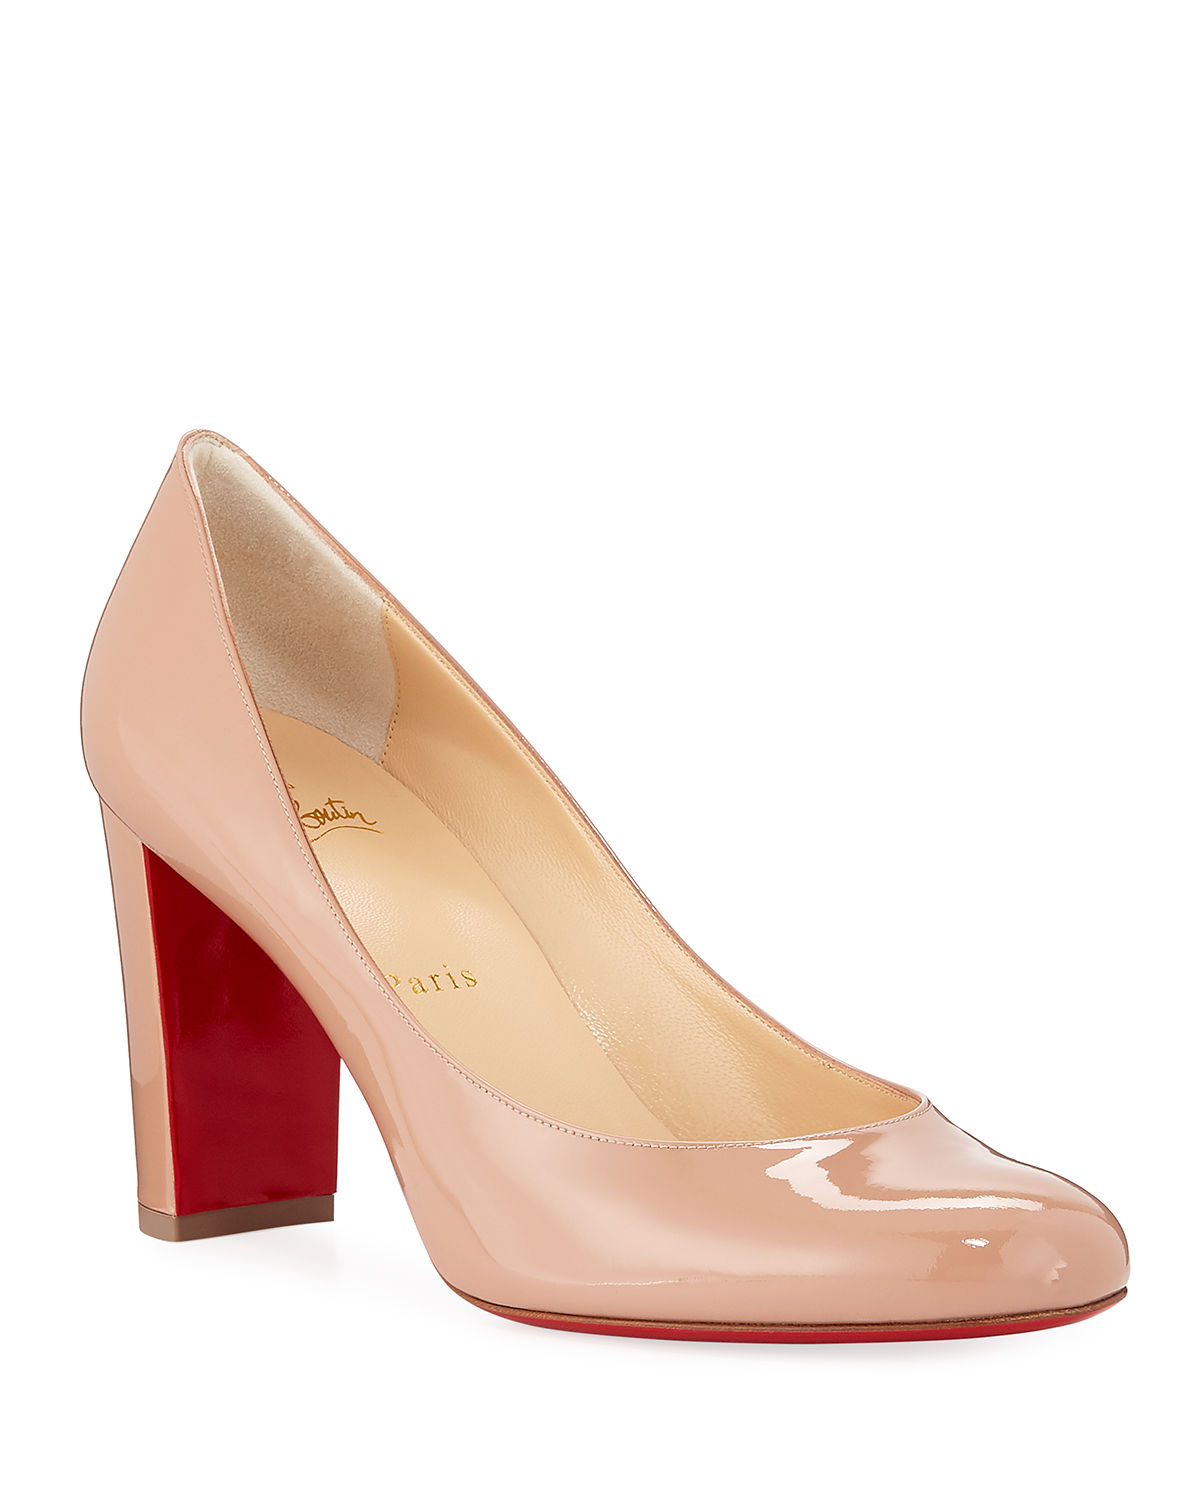 classic shoes size 40 details for Christian Louboutin Lady Gena Patent Red Sole Pumps | Neiman Marcus